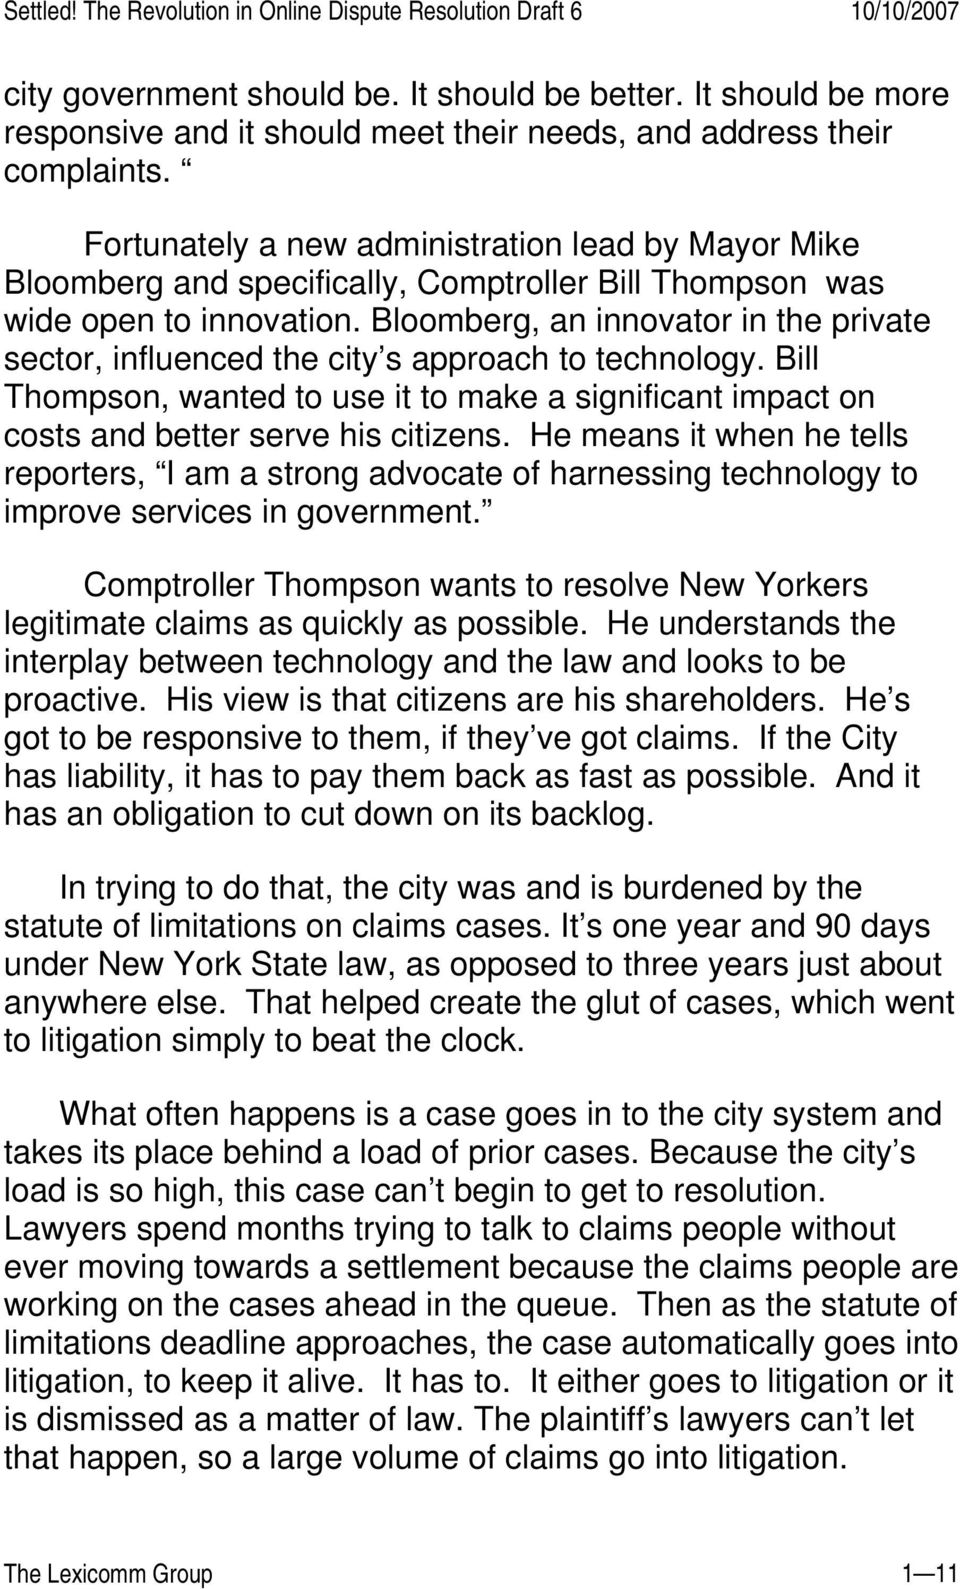 Bloomberg, an innovator in the private sector, influenced the city s approach to technology. Bill Thompson, wanted to use it to make a significant impact on costs and better serve his citizens.